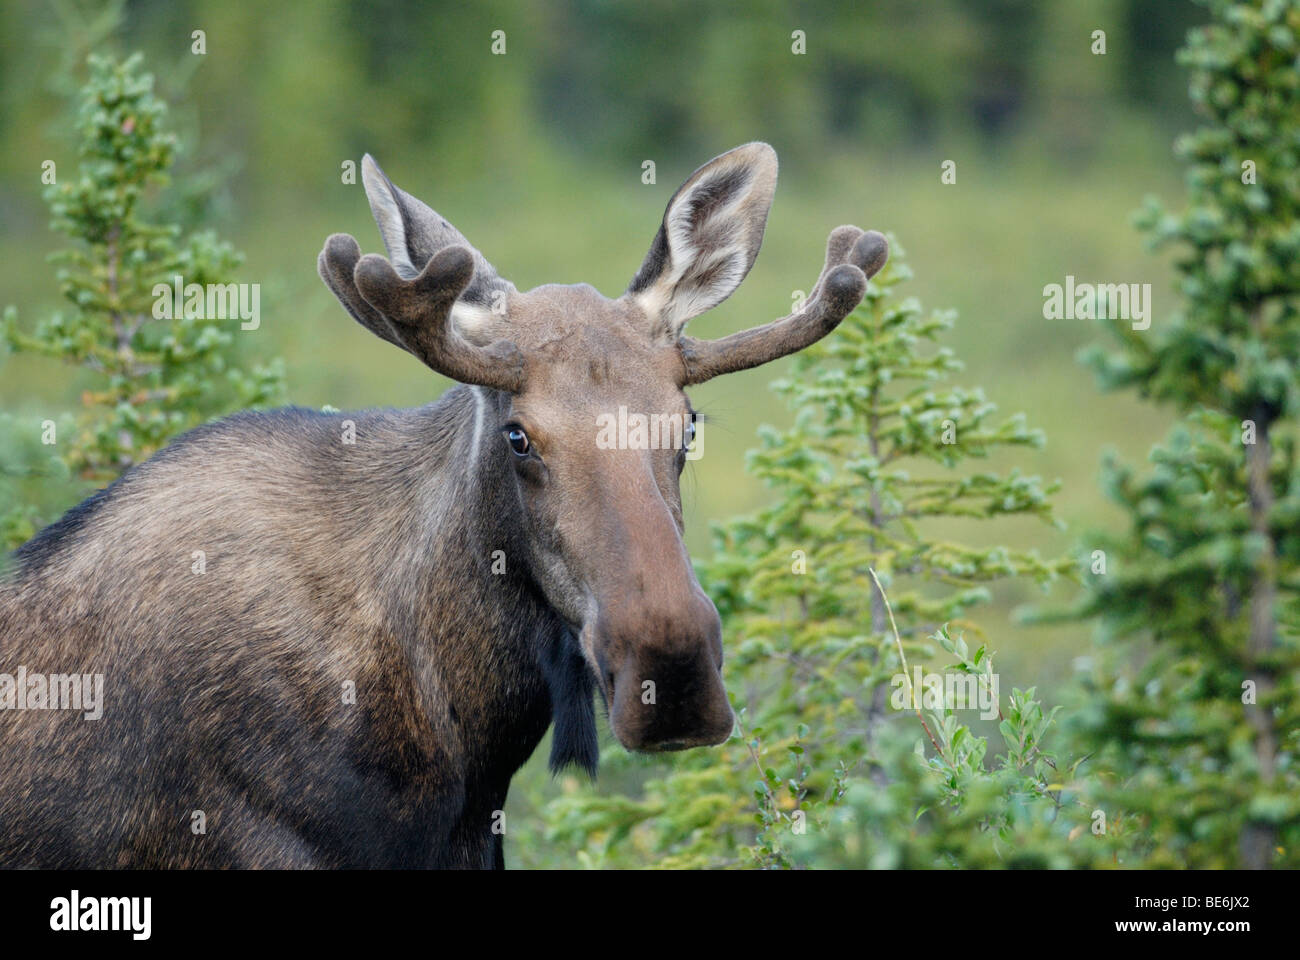 moose head stock photos u0026 moose head stock images alamy